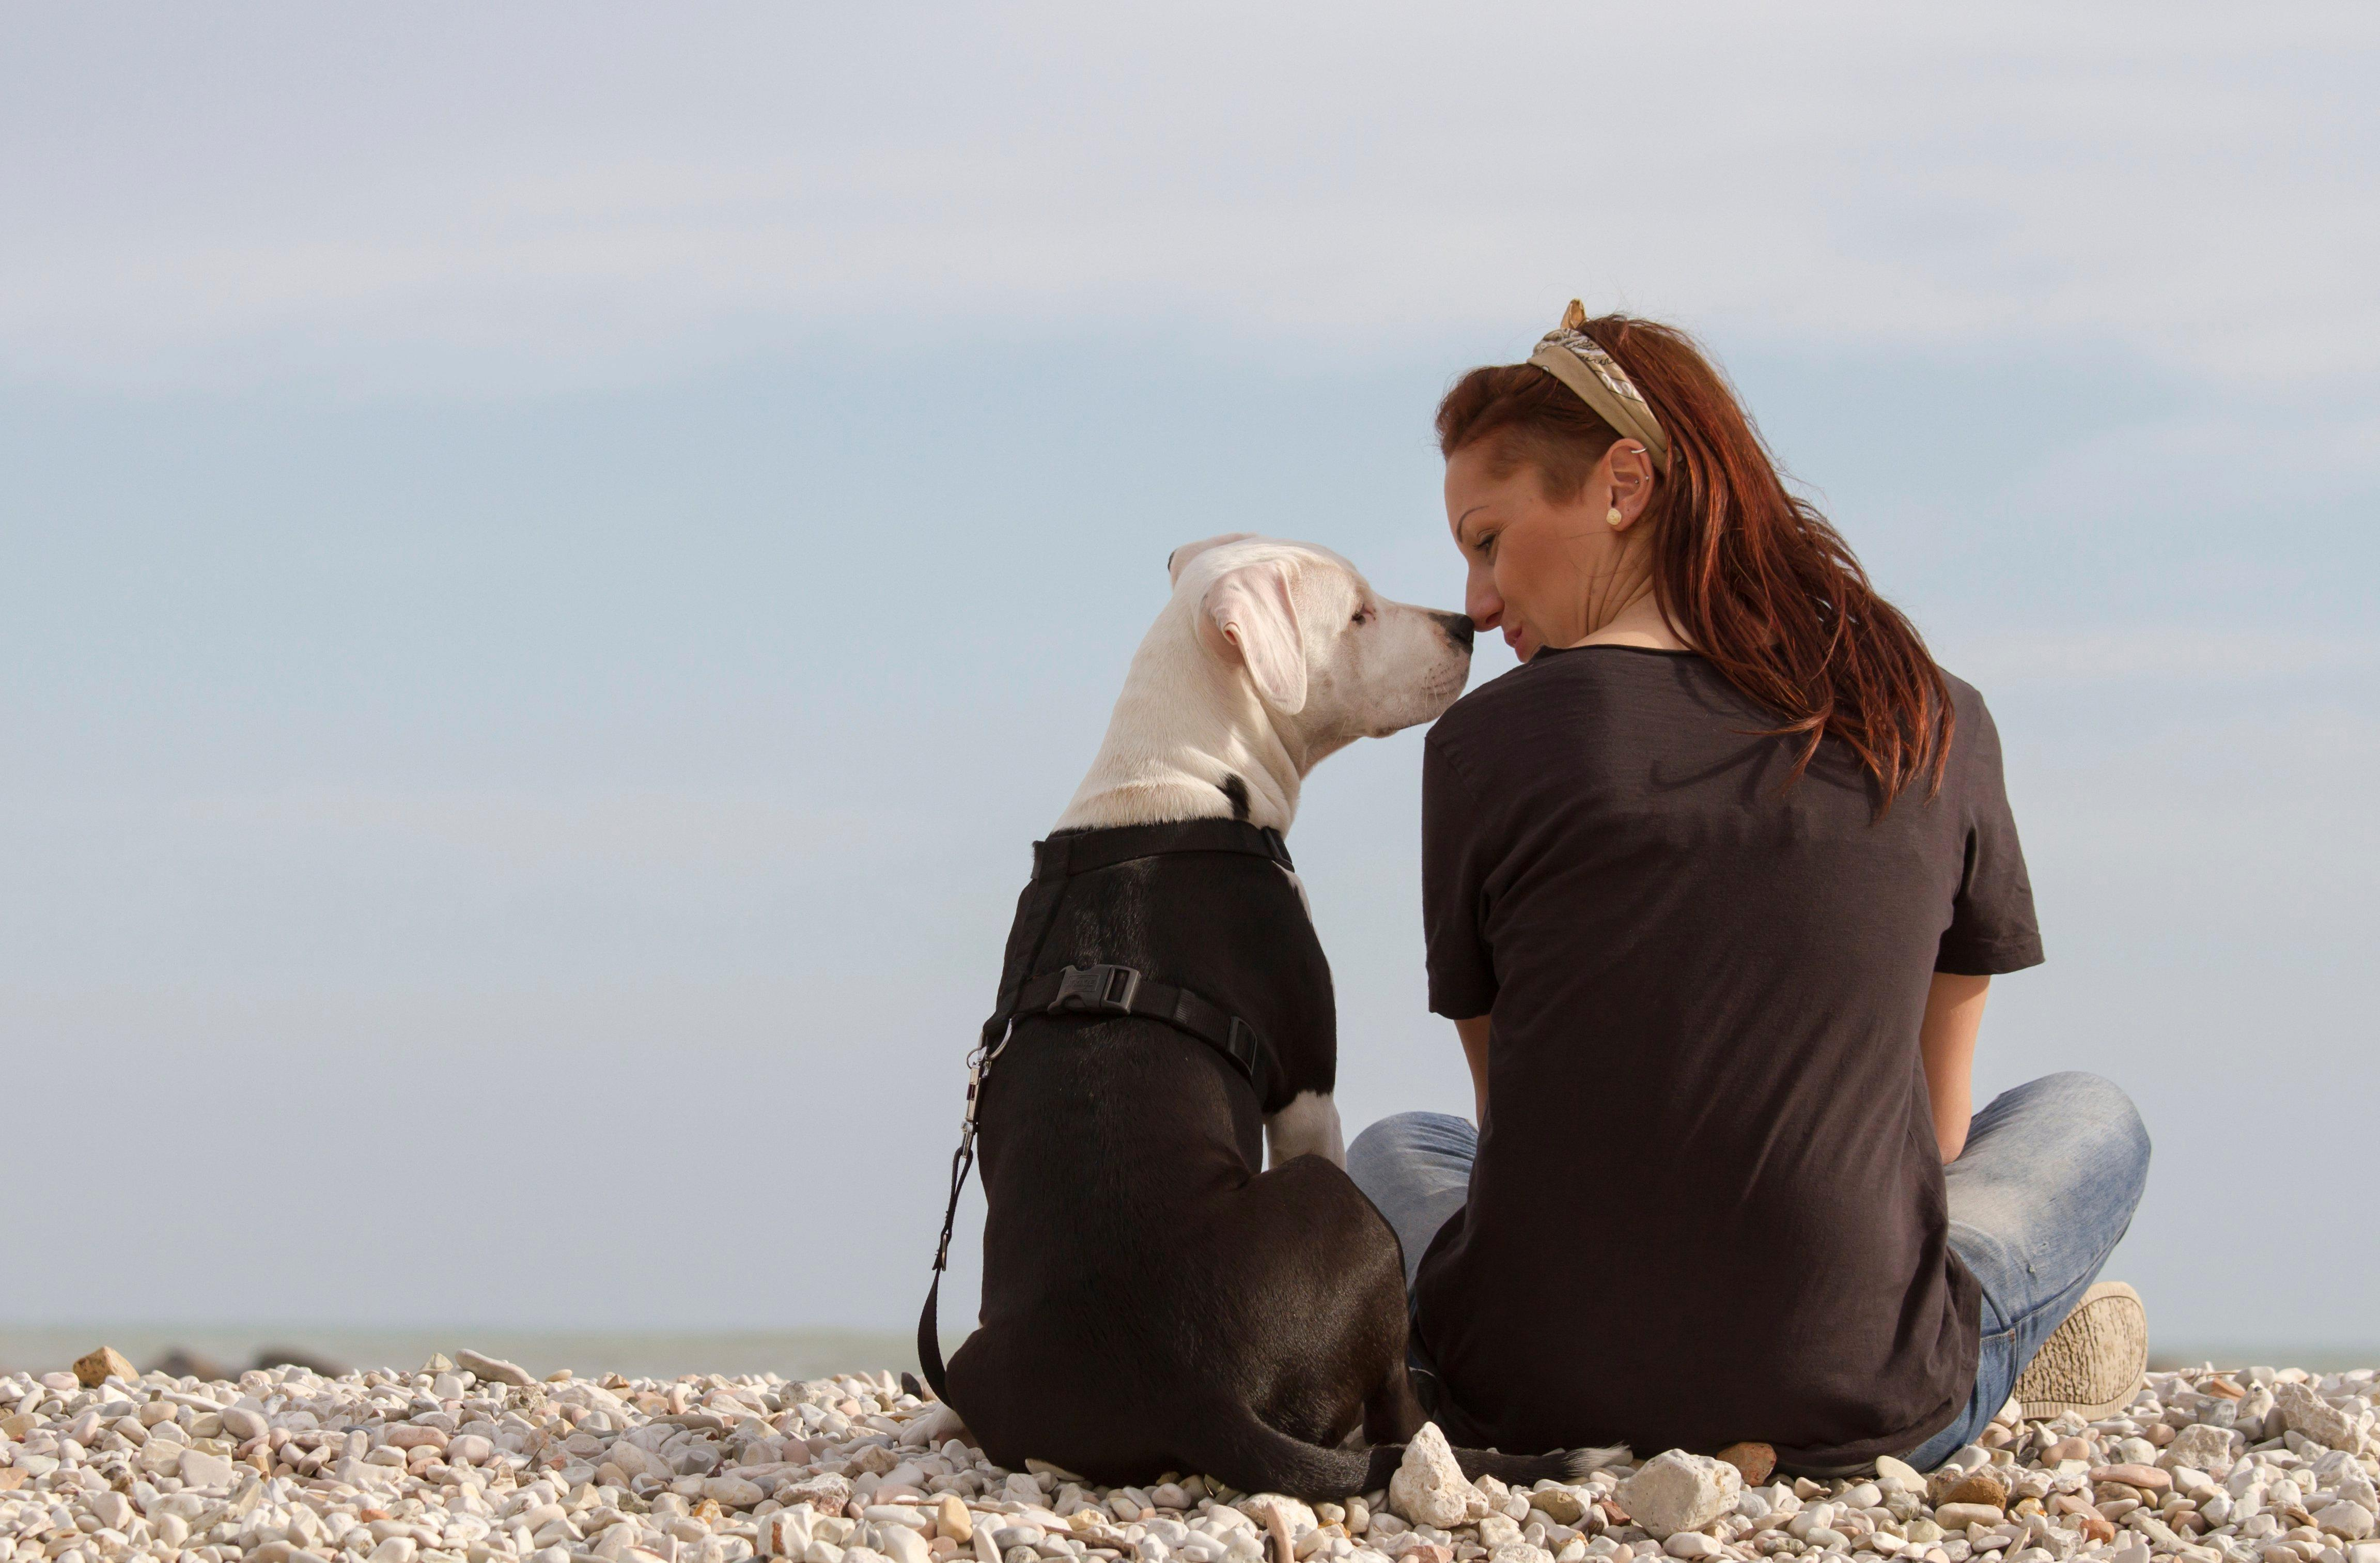 A Step-by-step Guide To Becoming A Service Dog